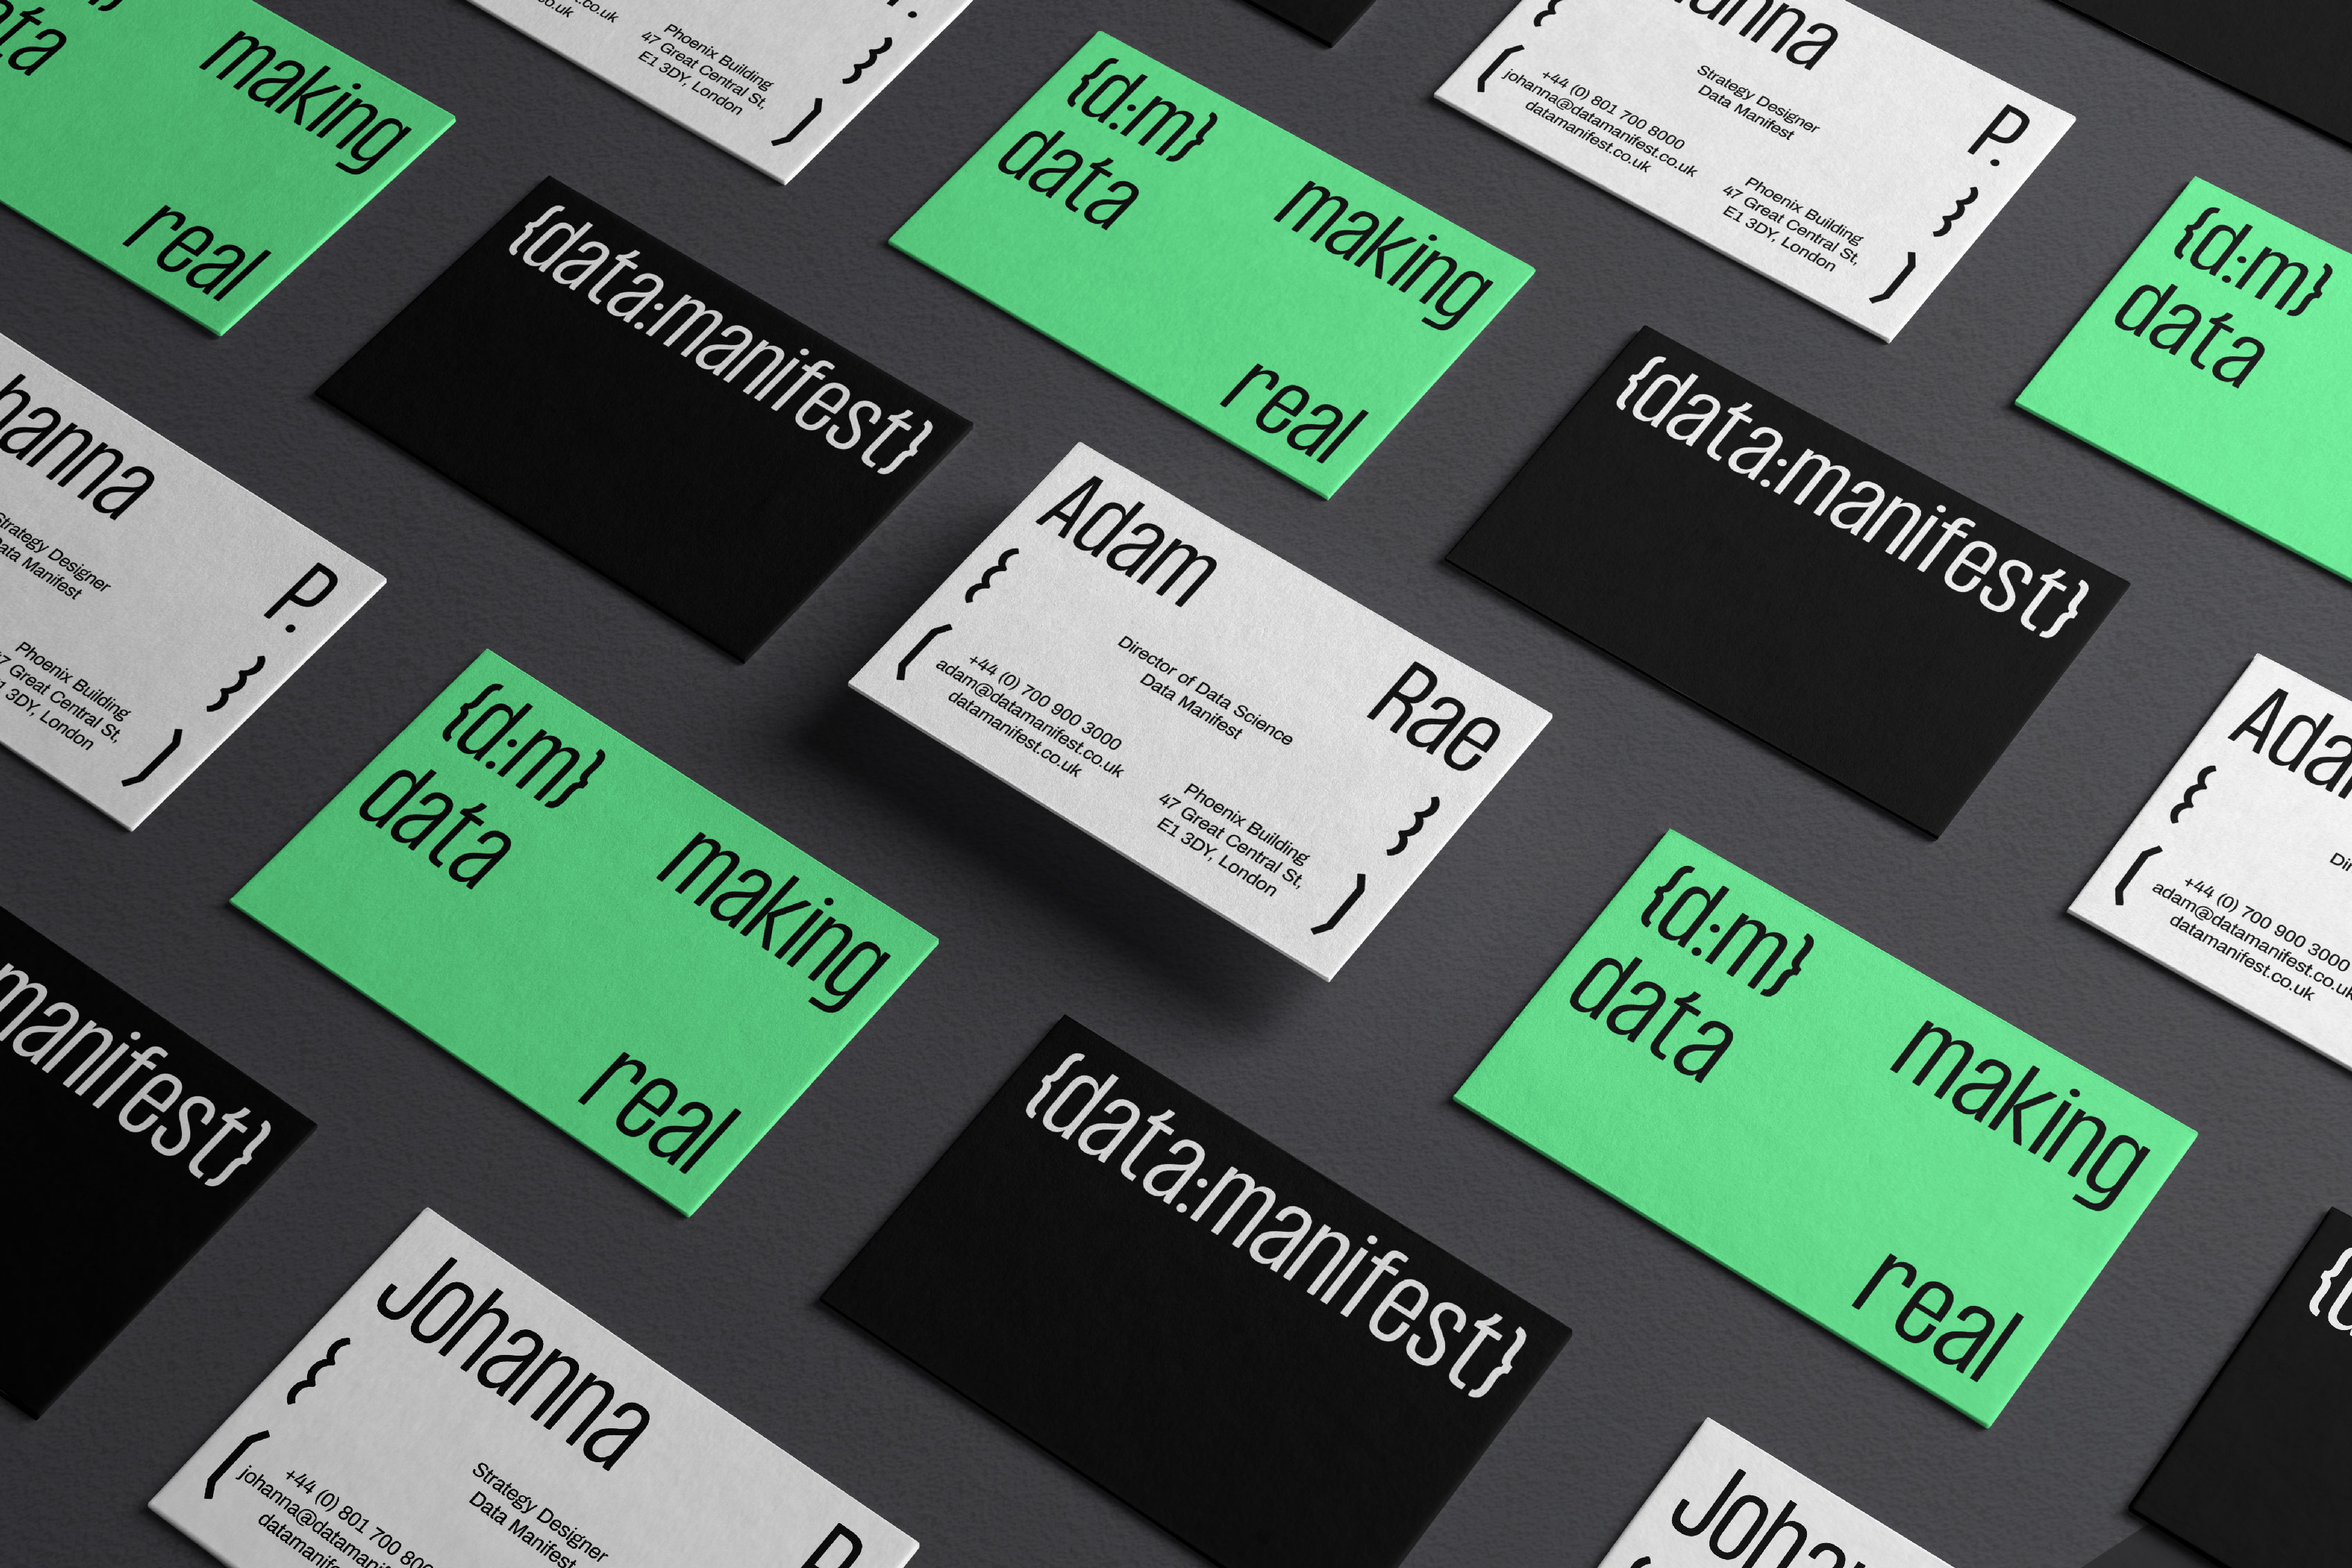 Studio CRONICA Designs a New Identity System for Data Manifest